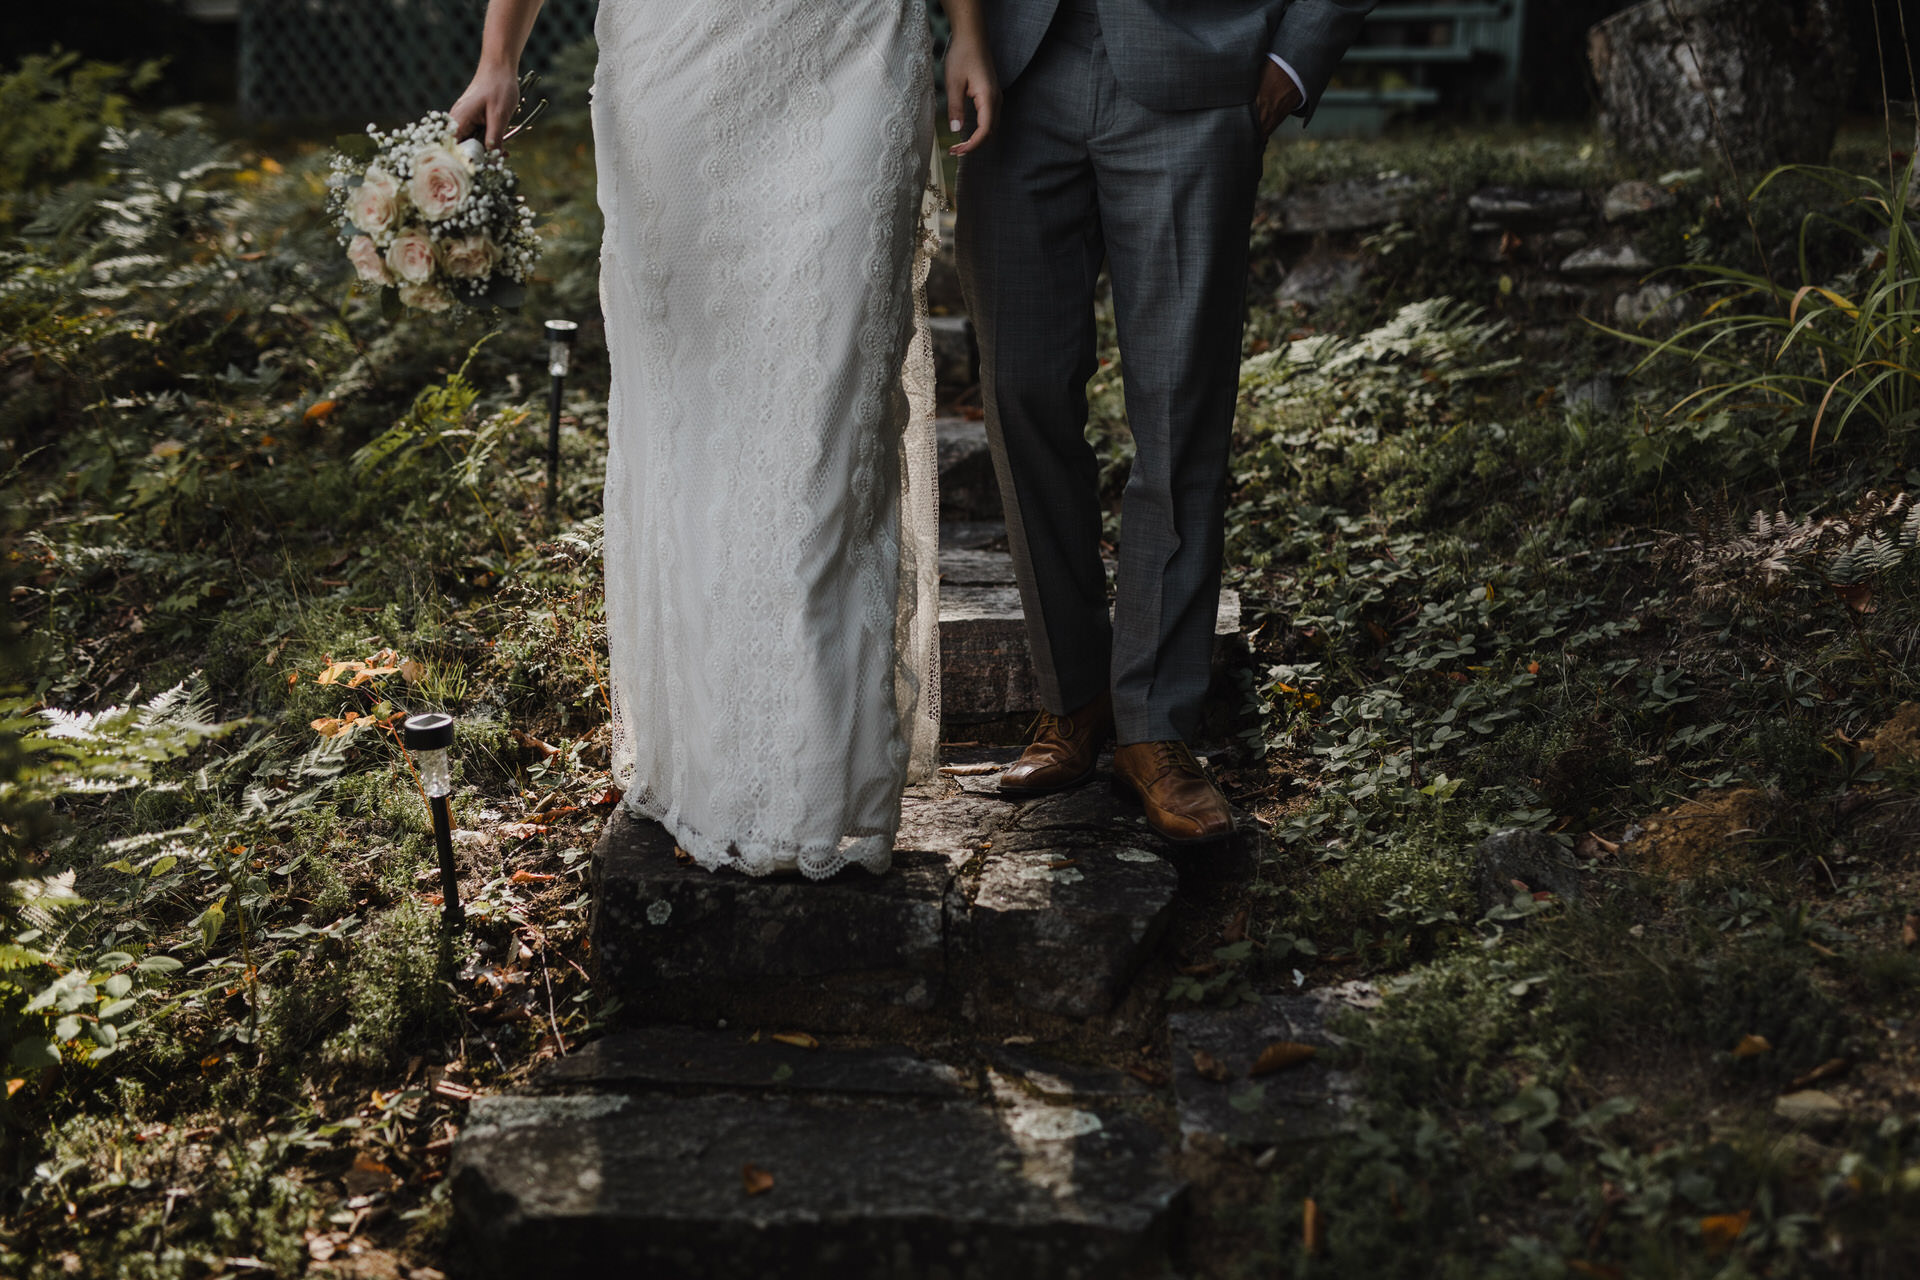 Muskoka Wedding - bride and groom stone steps